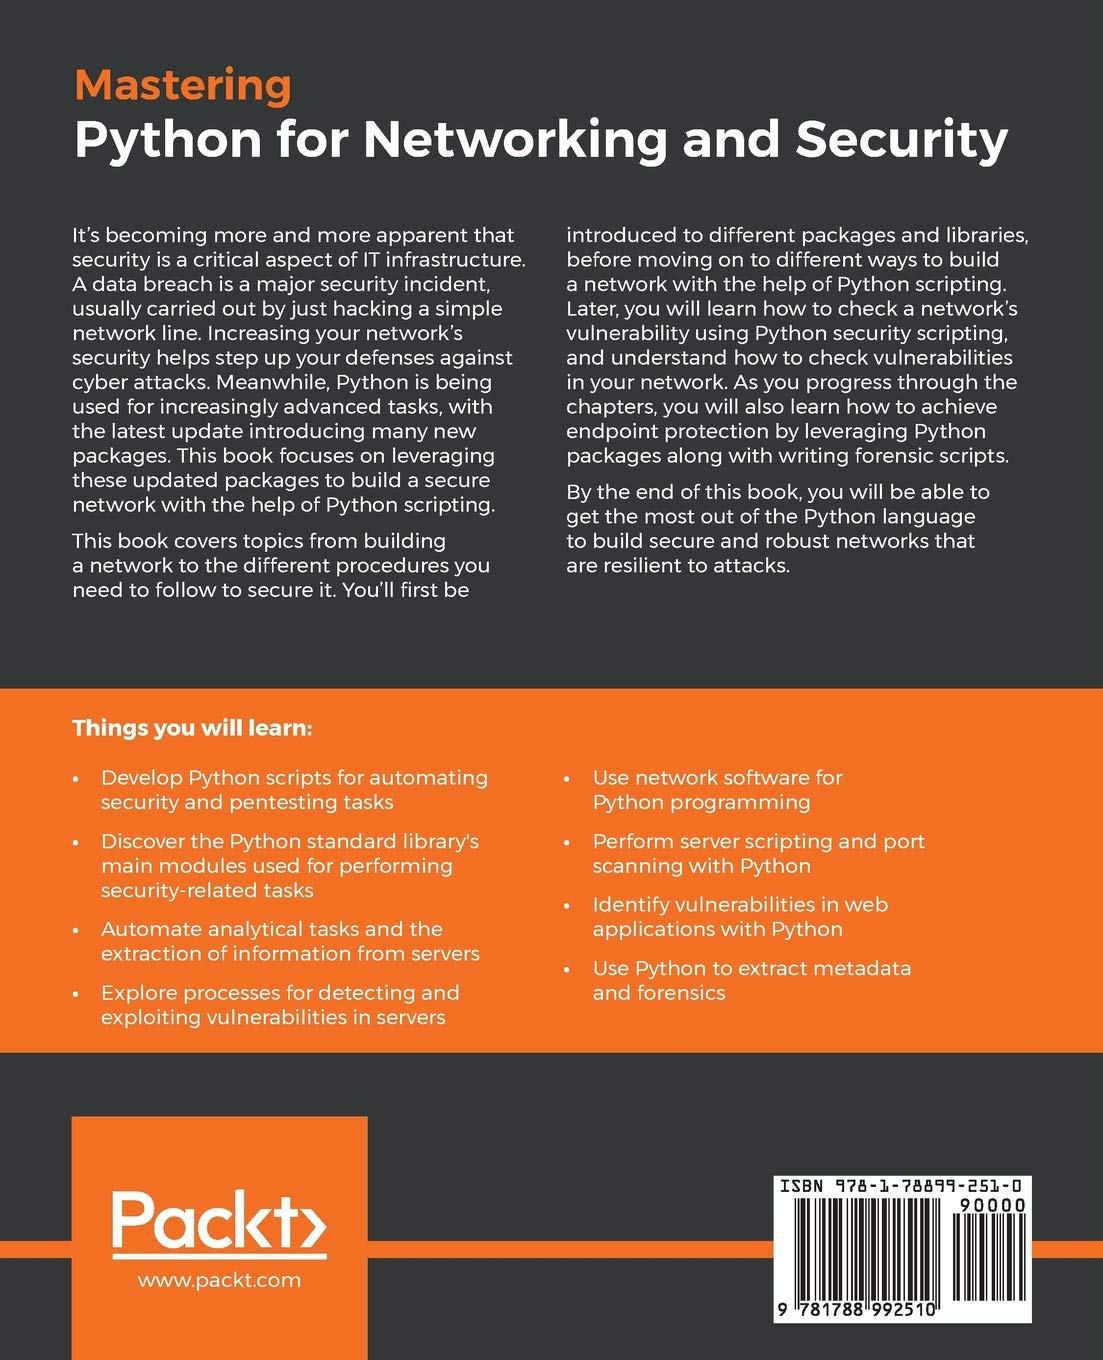 Mastering Python for Networking and Security: Leverage